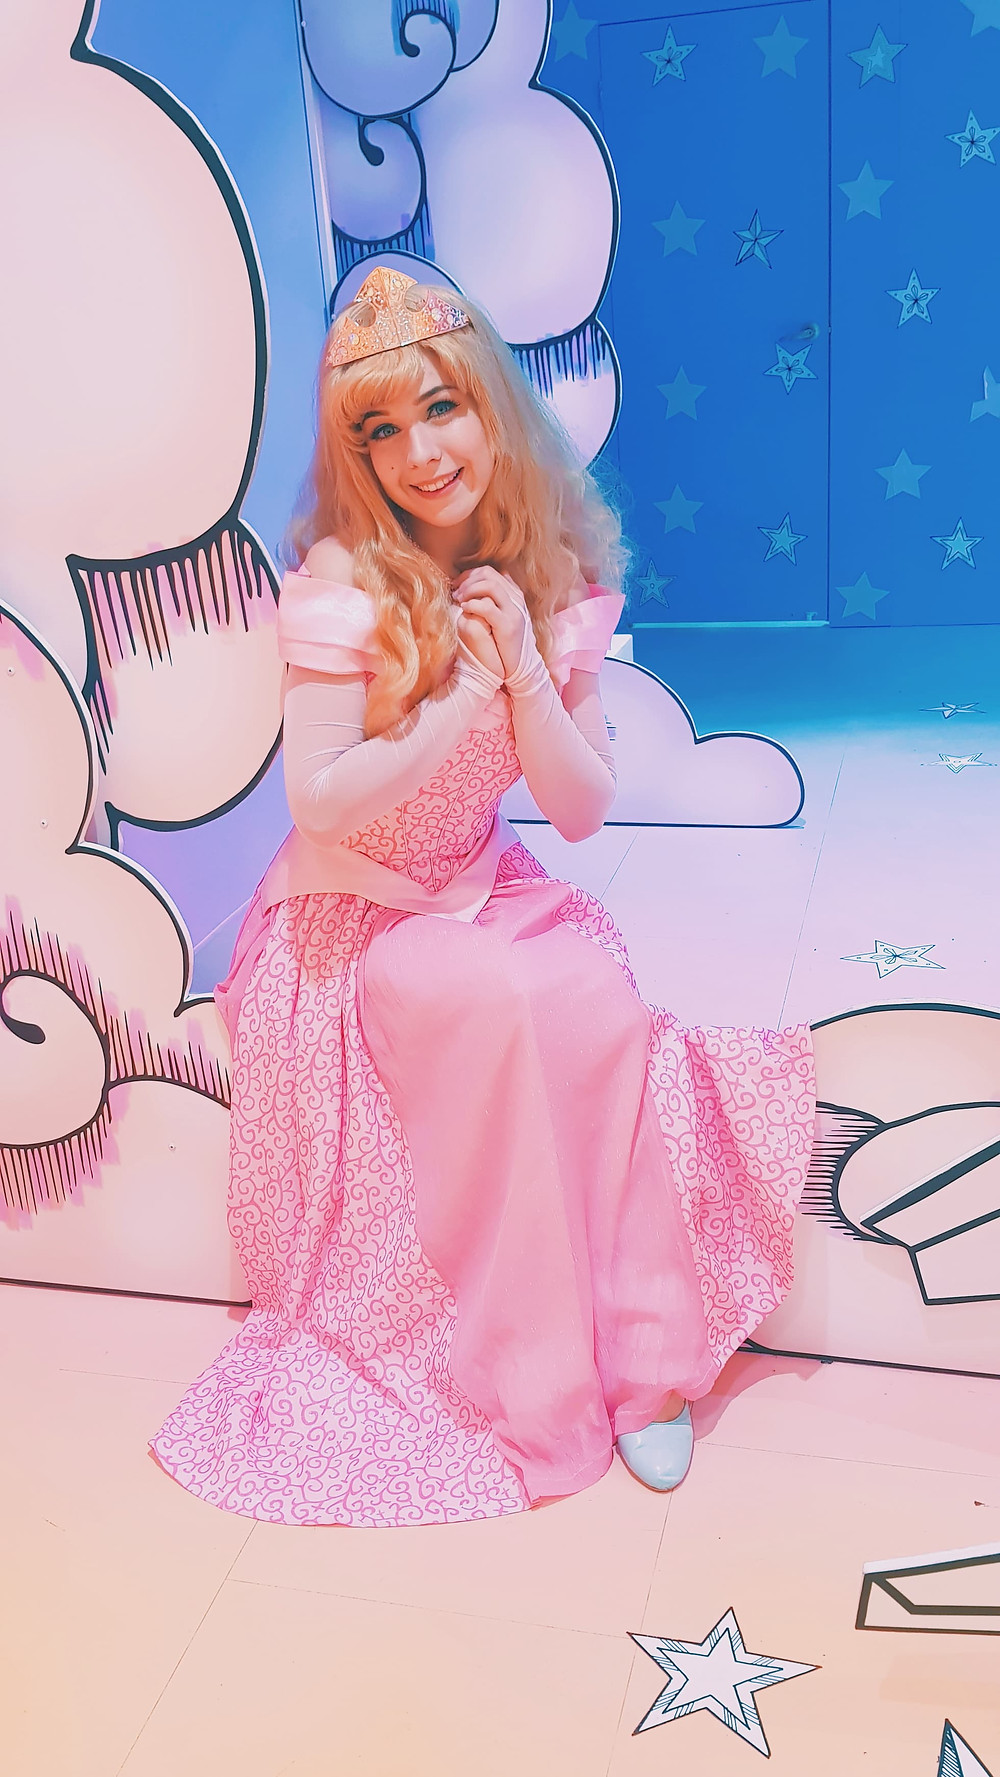 Princess Aurora sitting on a cloud in her pink dress